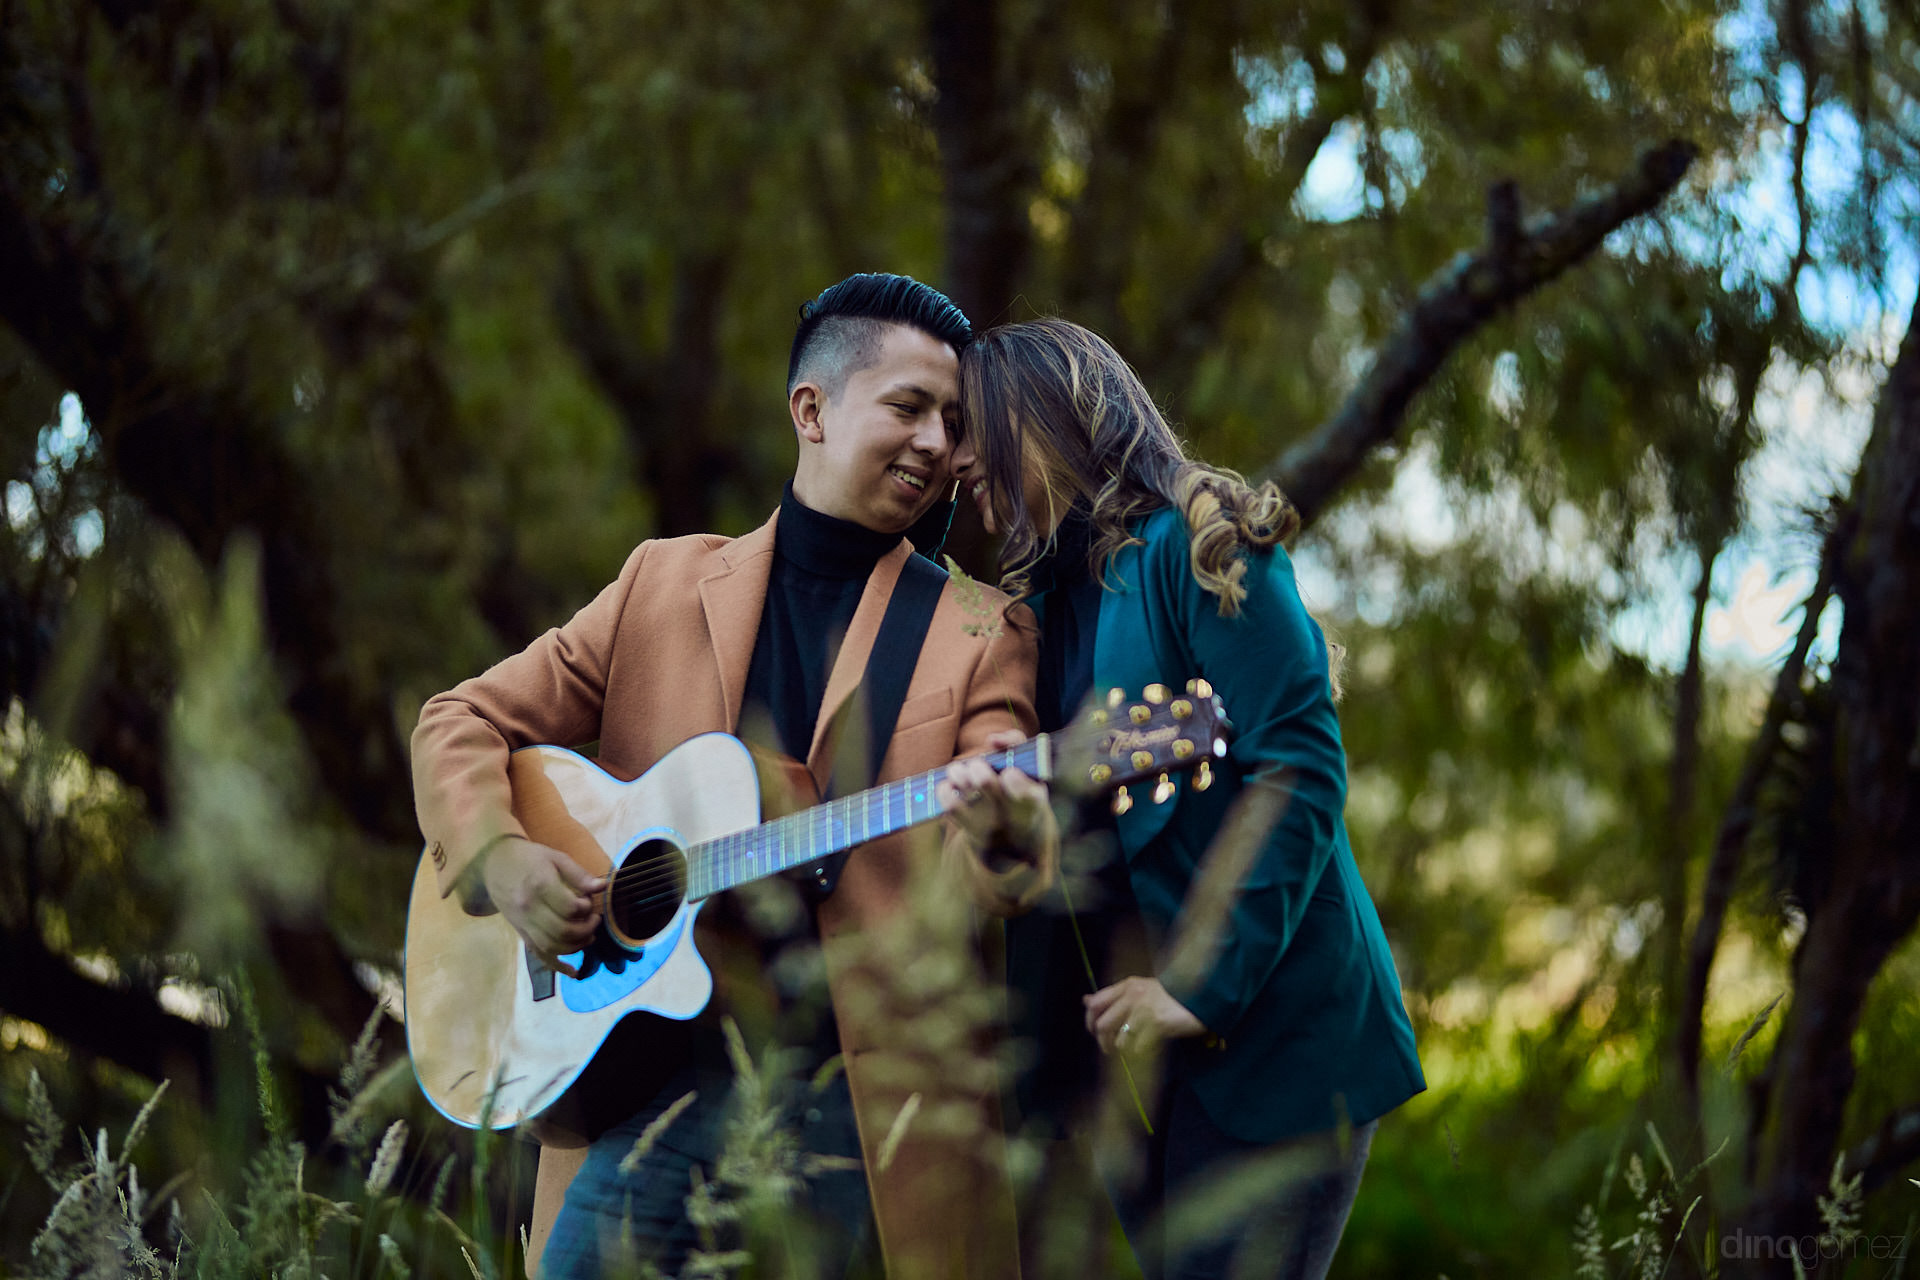 Beautiful Destination Wedding Photography In Mexico, San Miguel De Allende And Queretaro. Full Service Photography, Editorial Coverage Of Your Wedding, Albums, Announcemets And Couple Portraits.